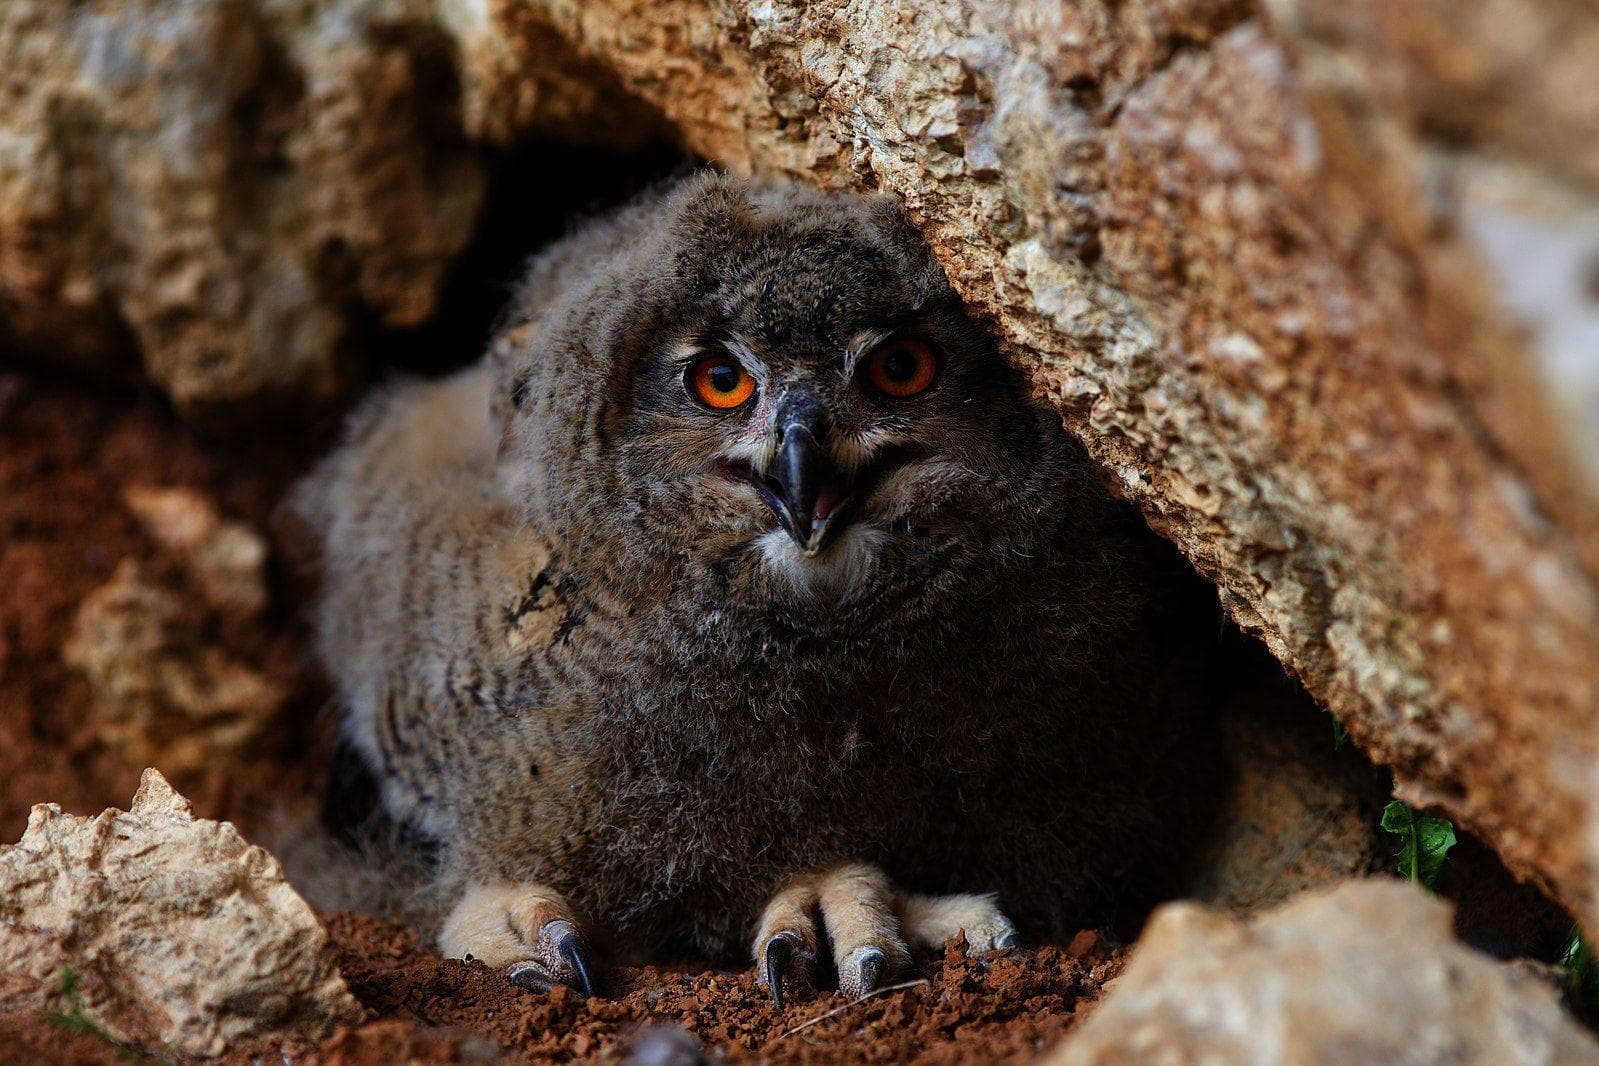 Random Scary Owl Photos That'll Definitely Give You Chills